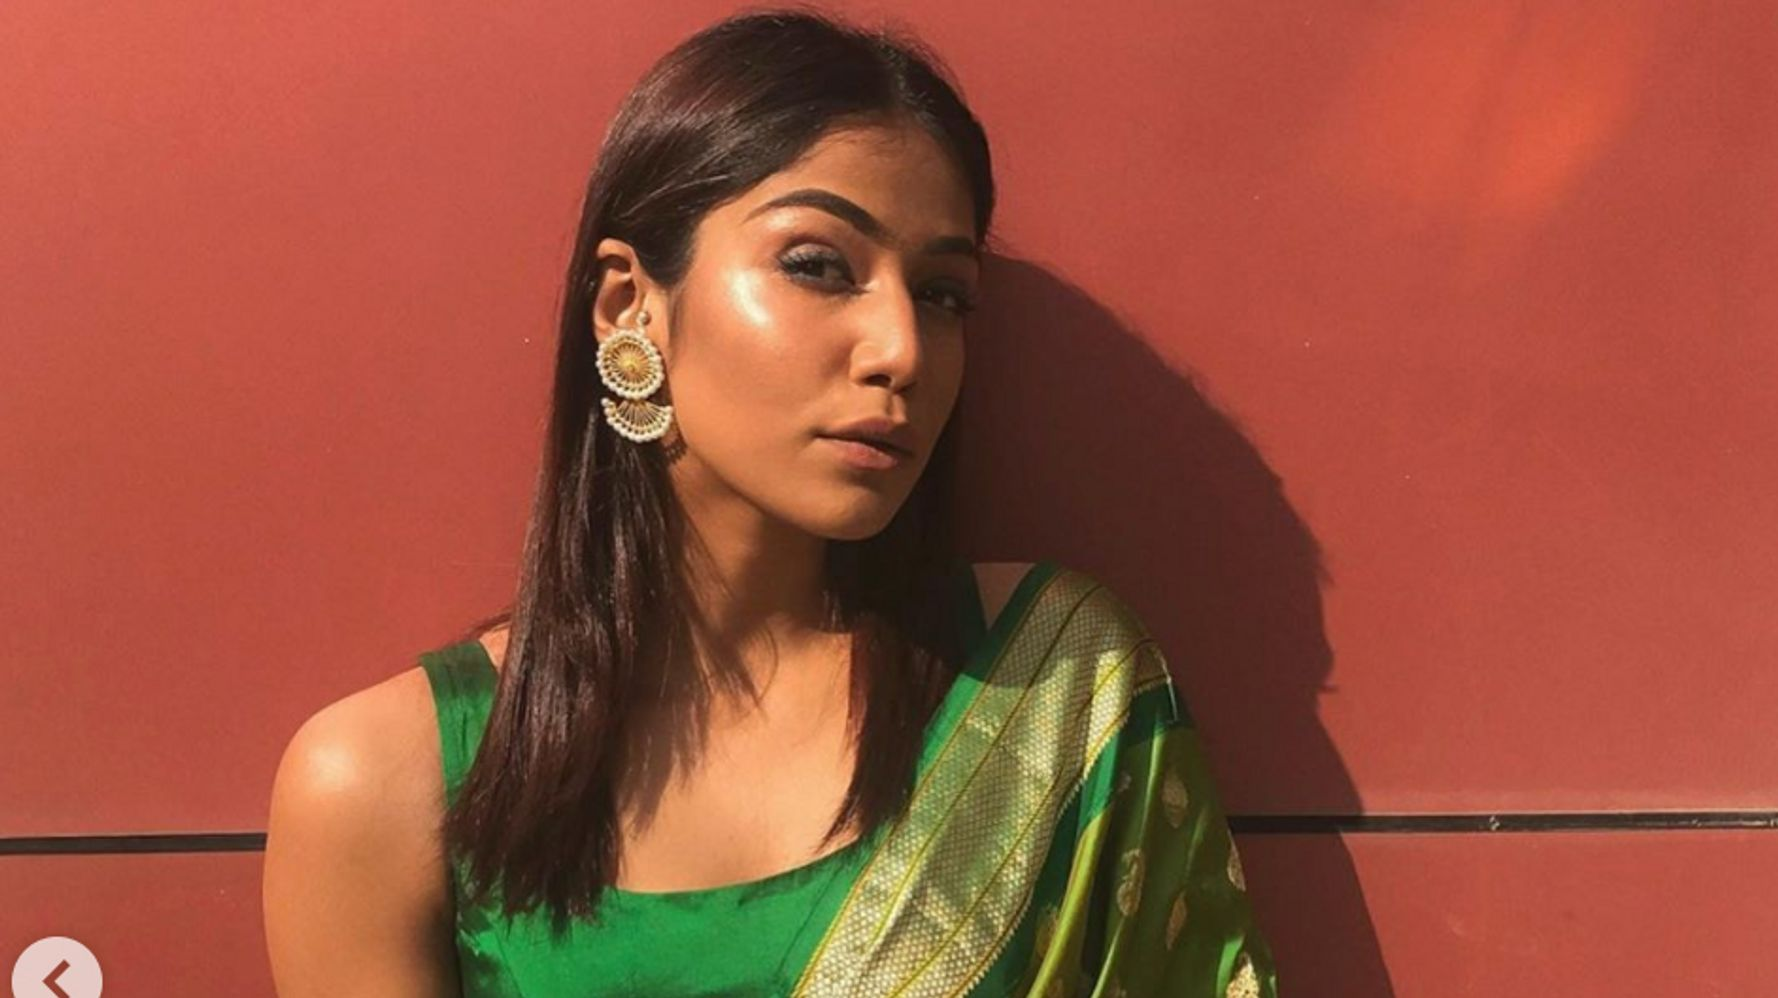 Influencer Santoshi Shetty Shouldn't Be Cancelled, But Her Video Wasn't A 'Mistake'